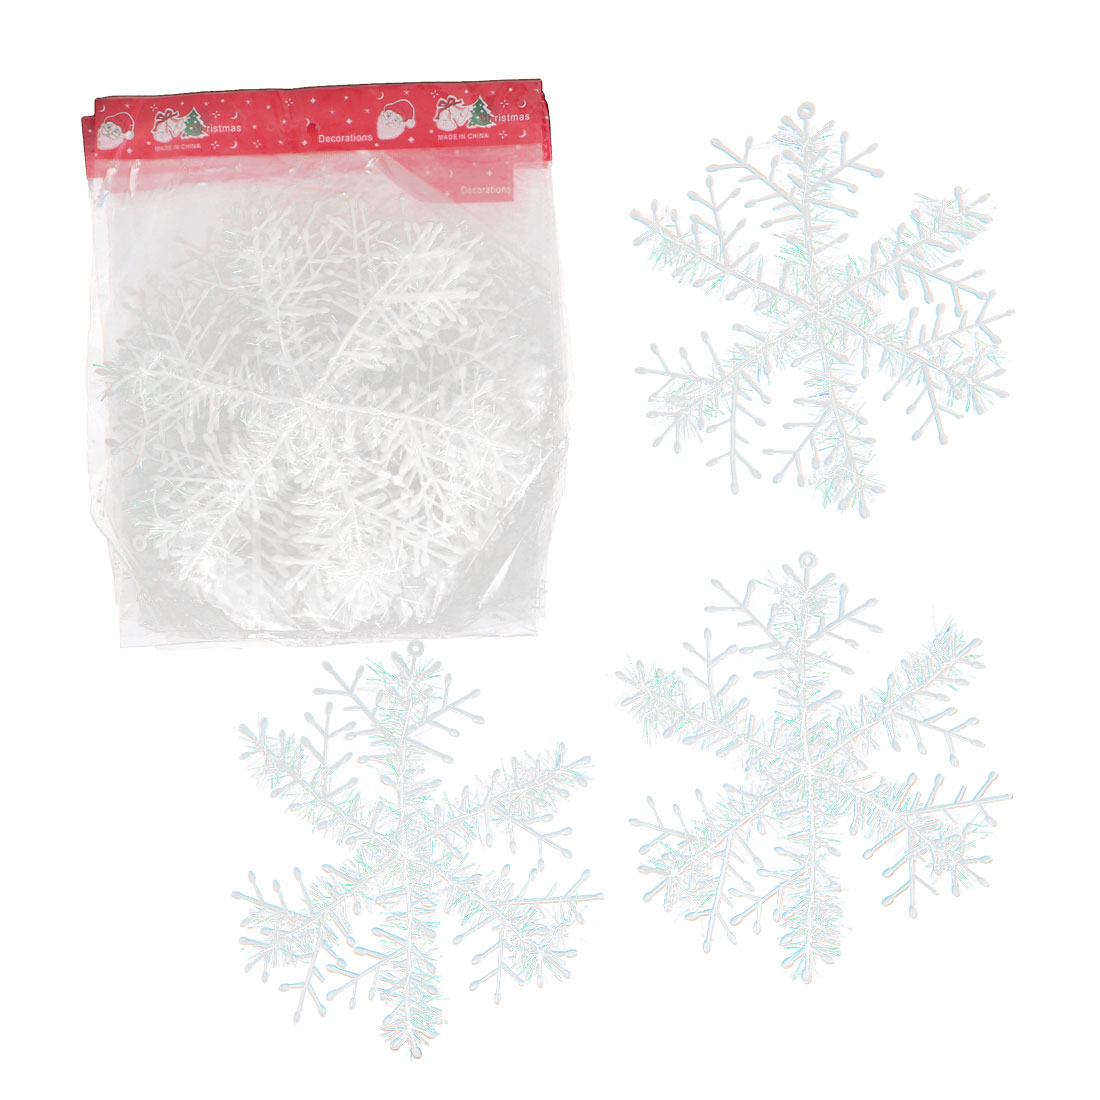 10pcs Plastic Xmas Snowflake Pendant White 22cm Dia for Christmas Tree Hanging Decor